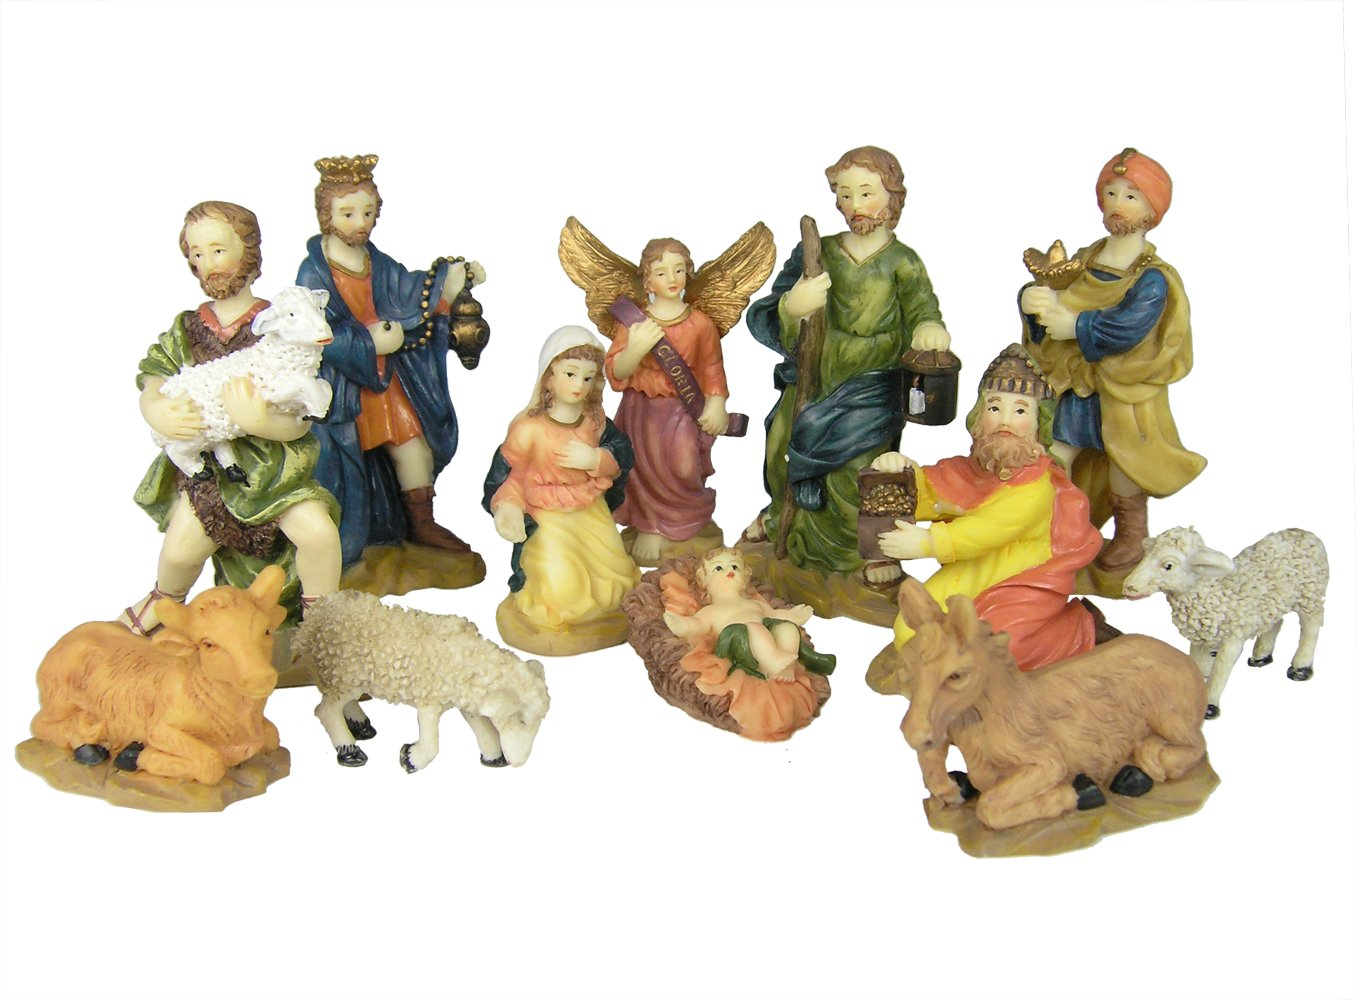 Nativity Figurine Set - Pack of 12 Hand Painted Polystone Figurines - Up To 4-Inch Tall - Manger Scene Accessories – Stable Animals